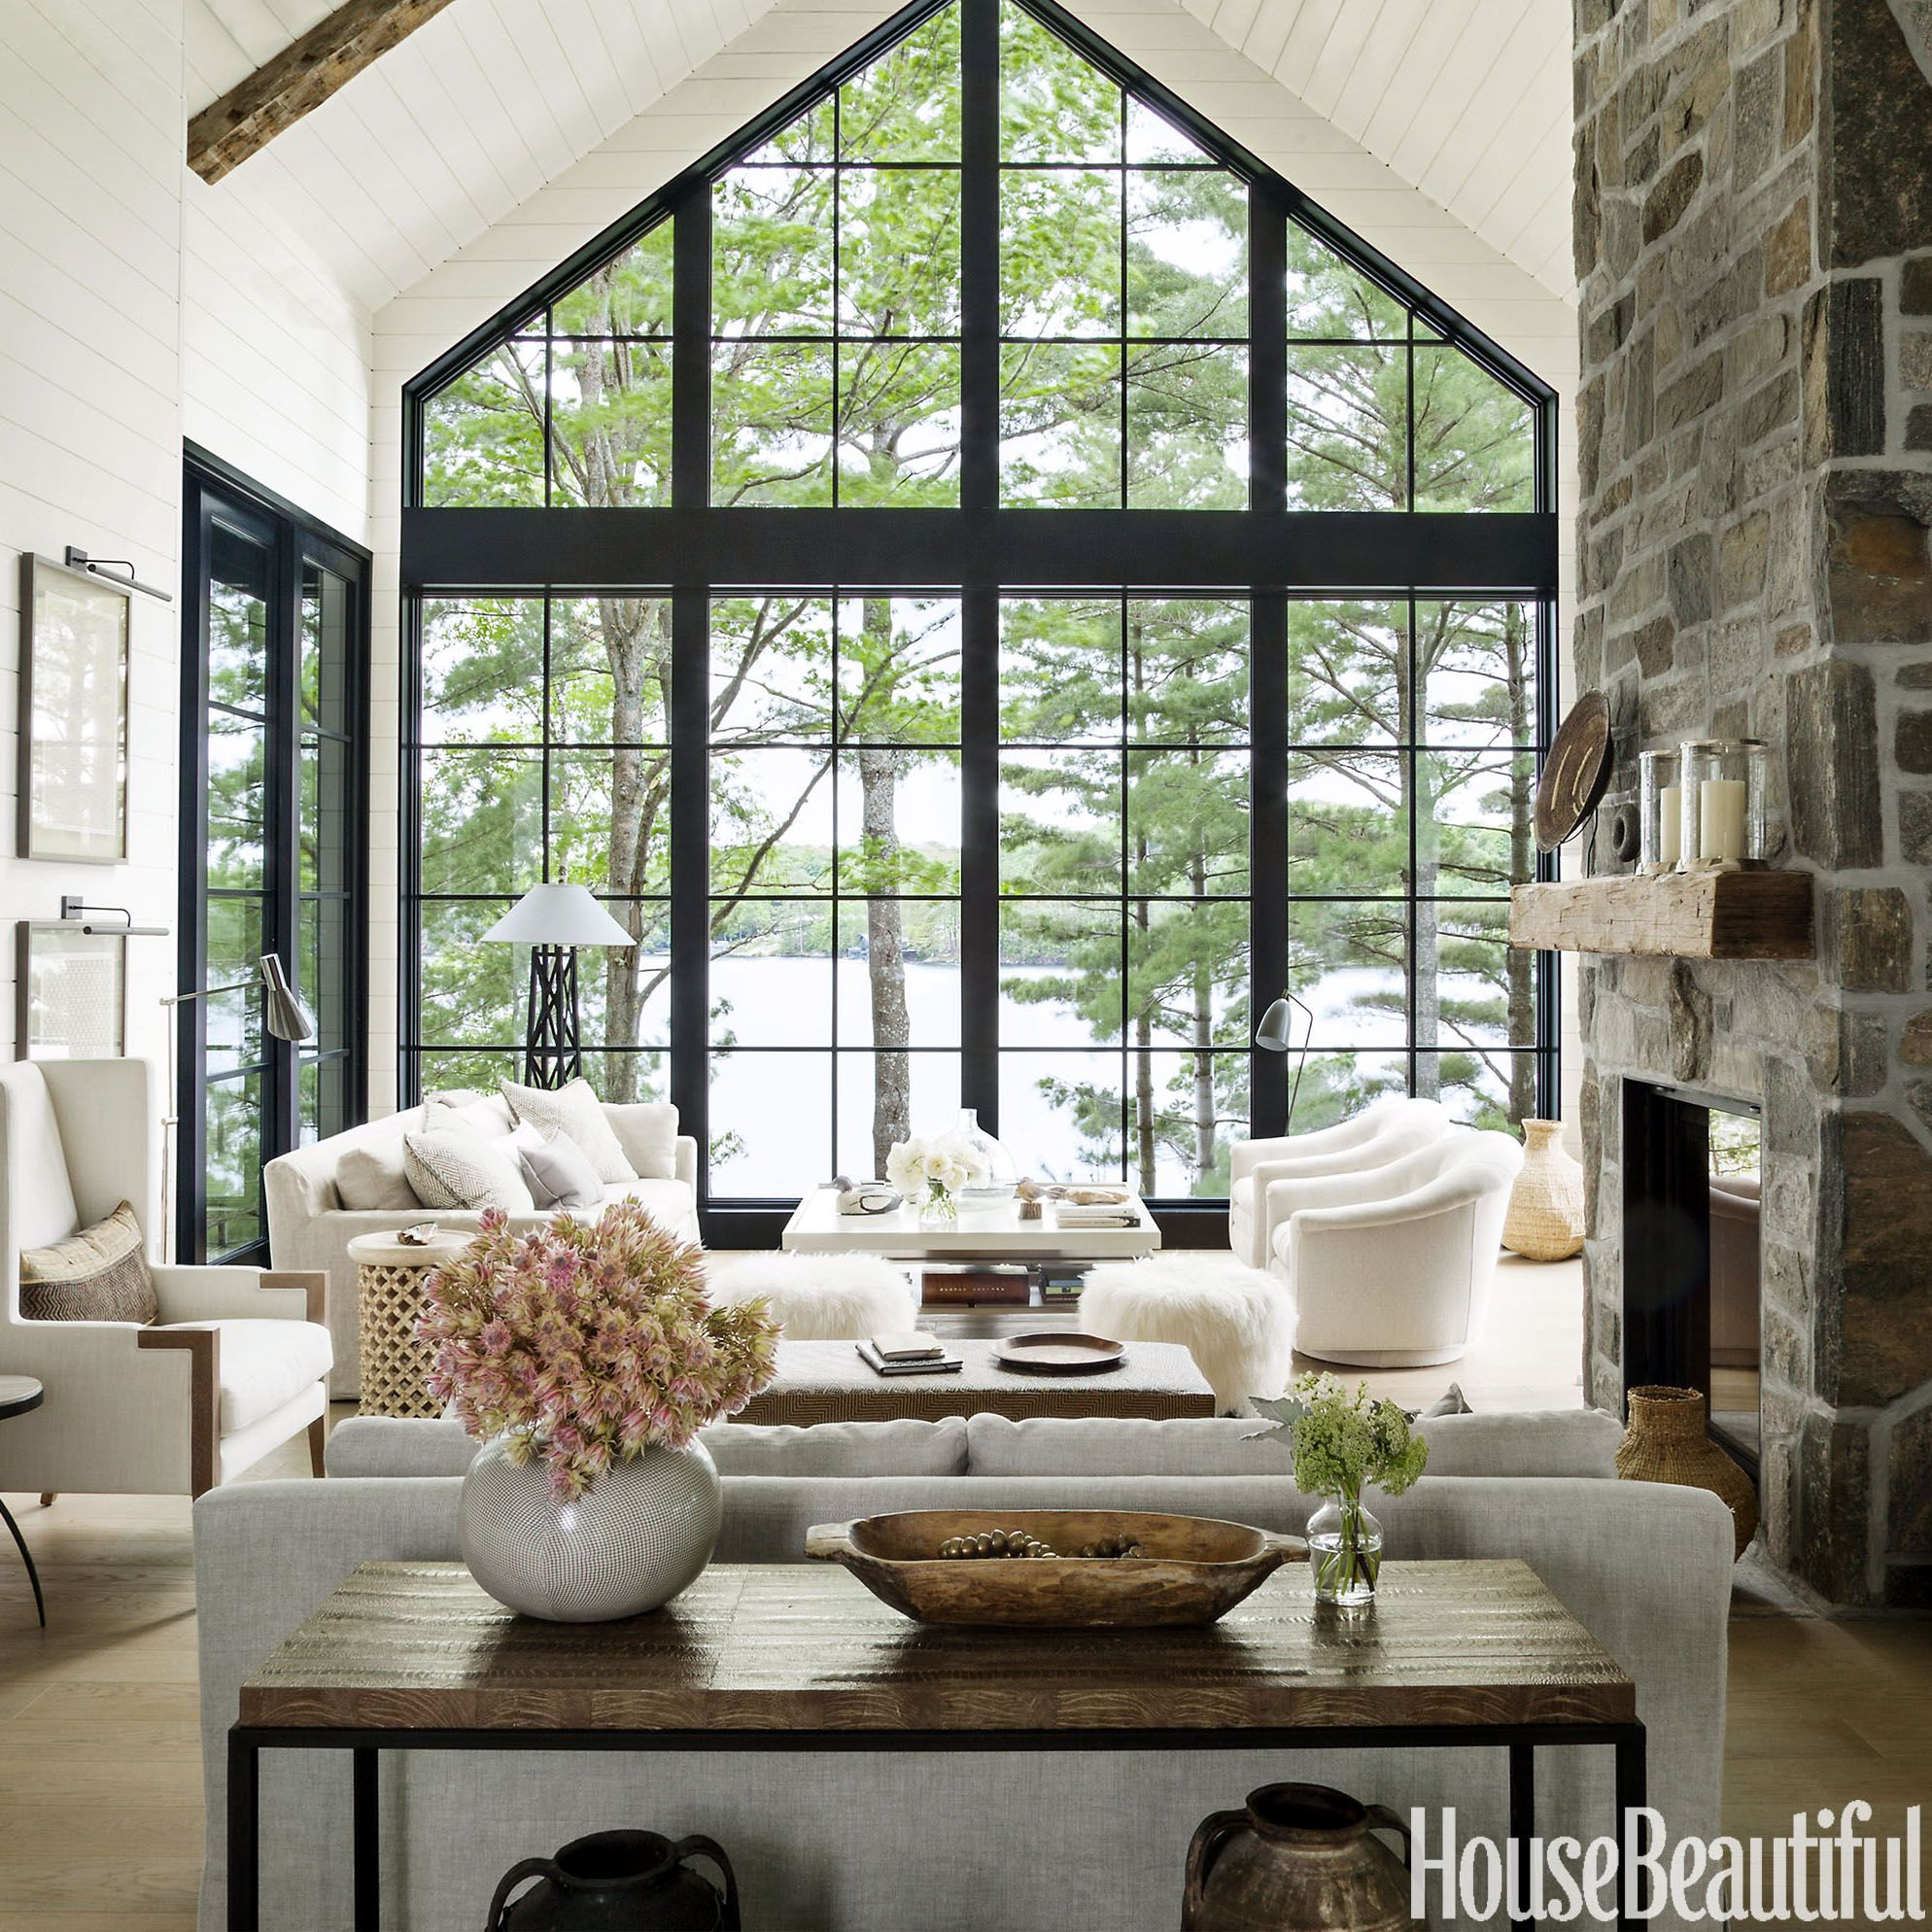 Interior Designer Anne Hepferu0027s Modern Rustic Summer Lake House In Muskoka.